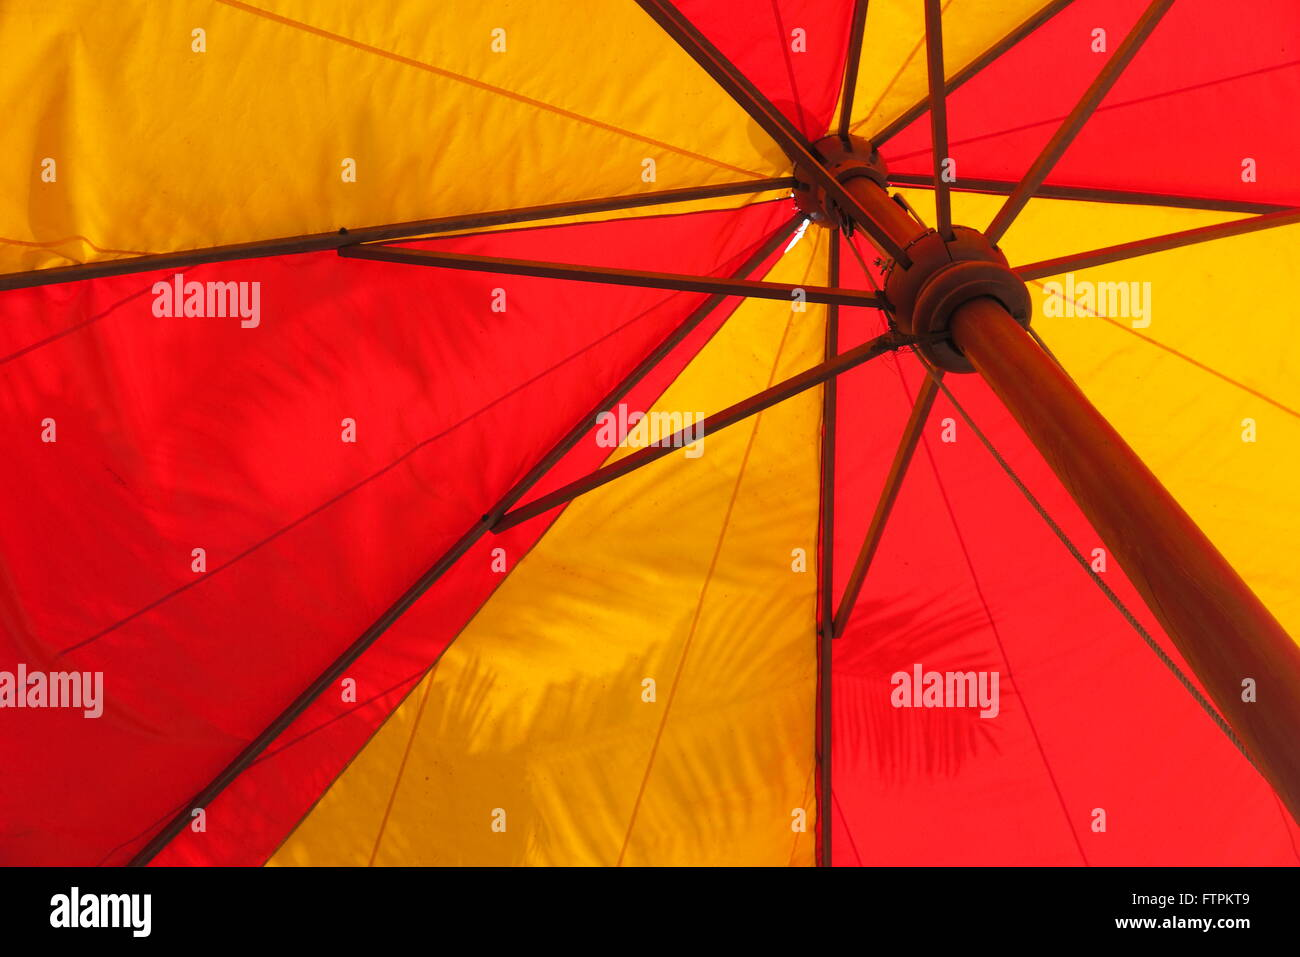 Giant red and yellow umbrella against a palm leaf in the botany garden - Stock Image